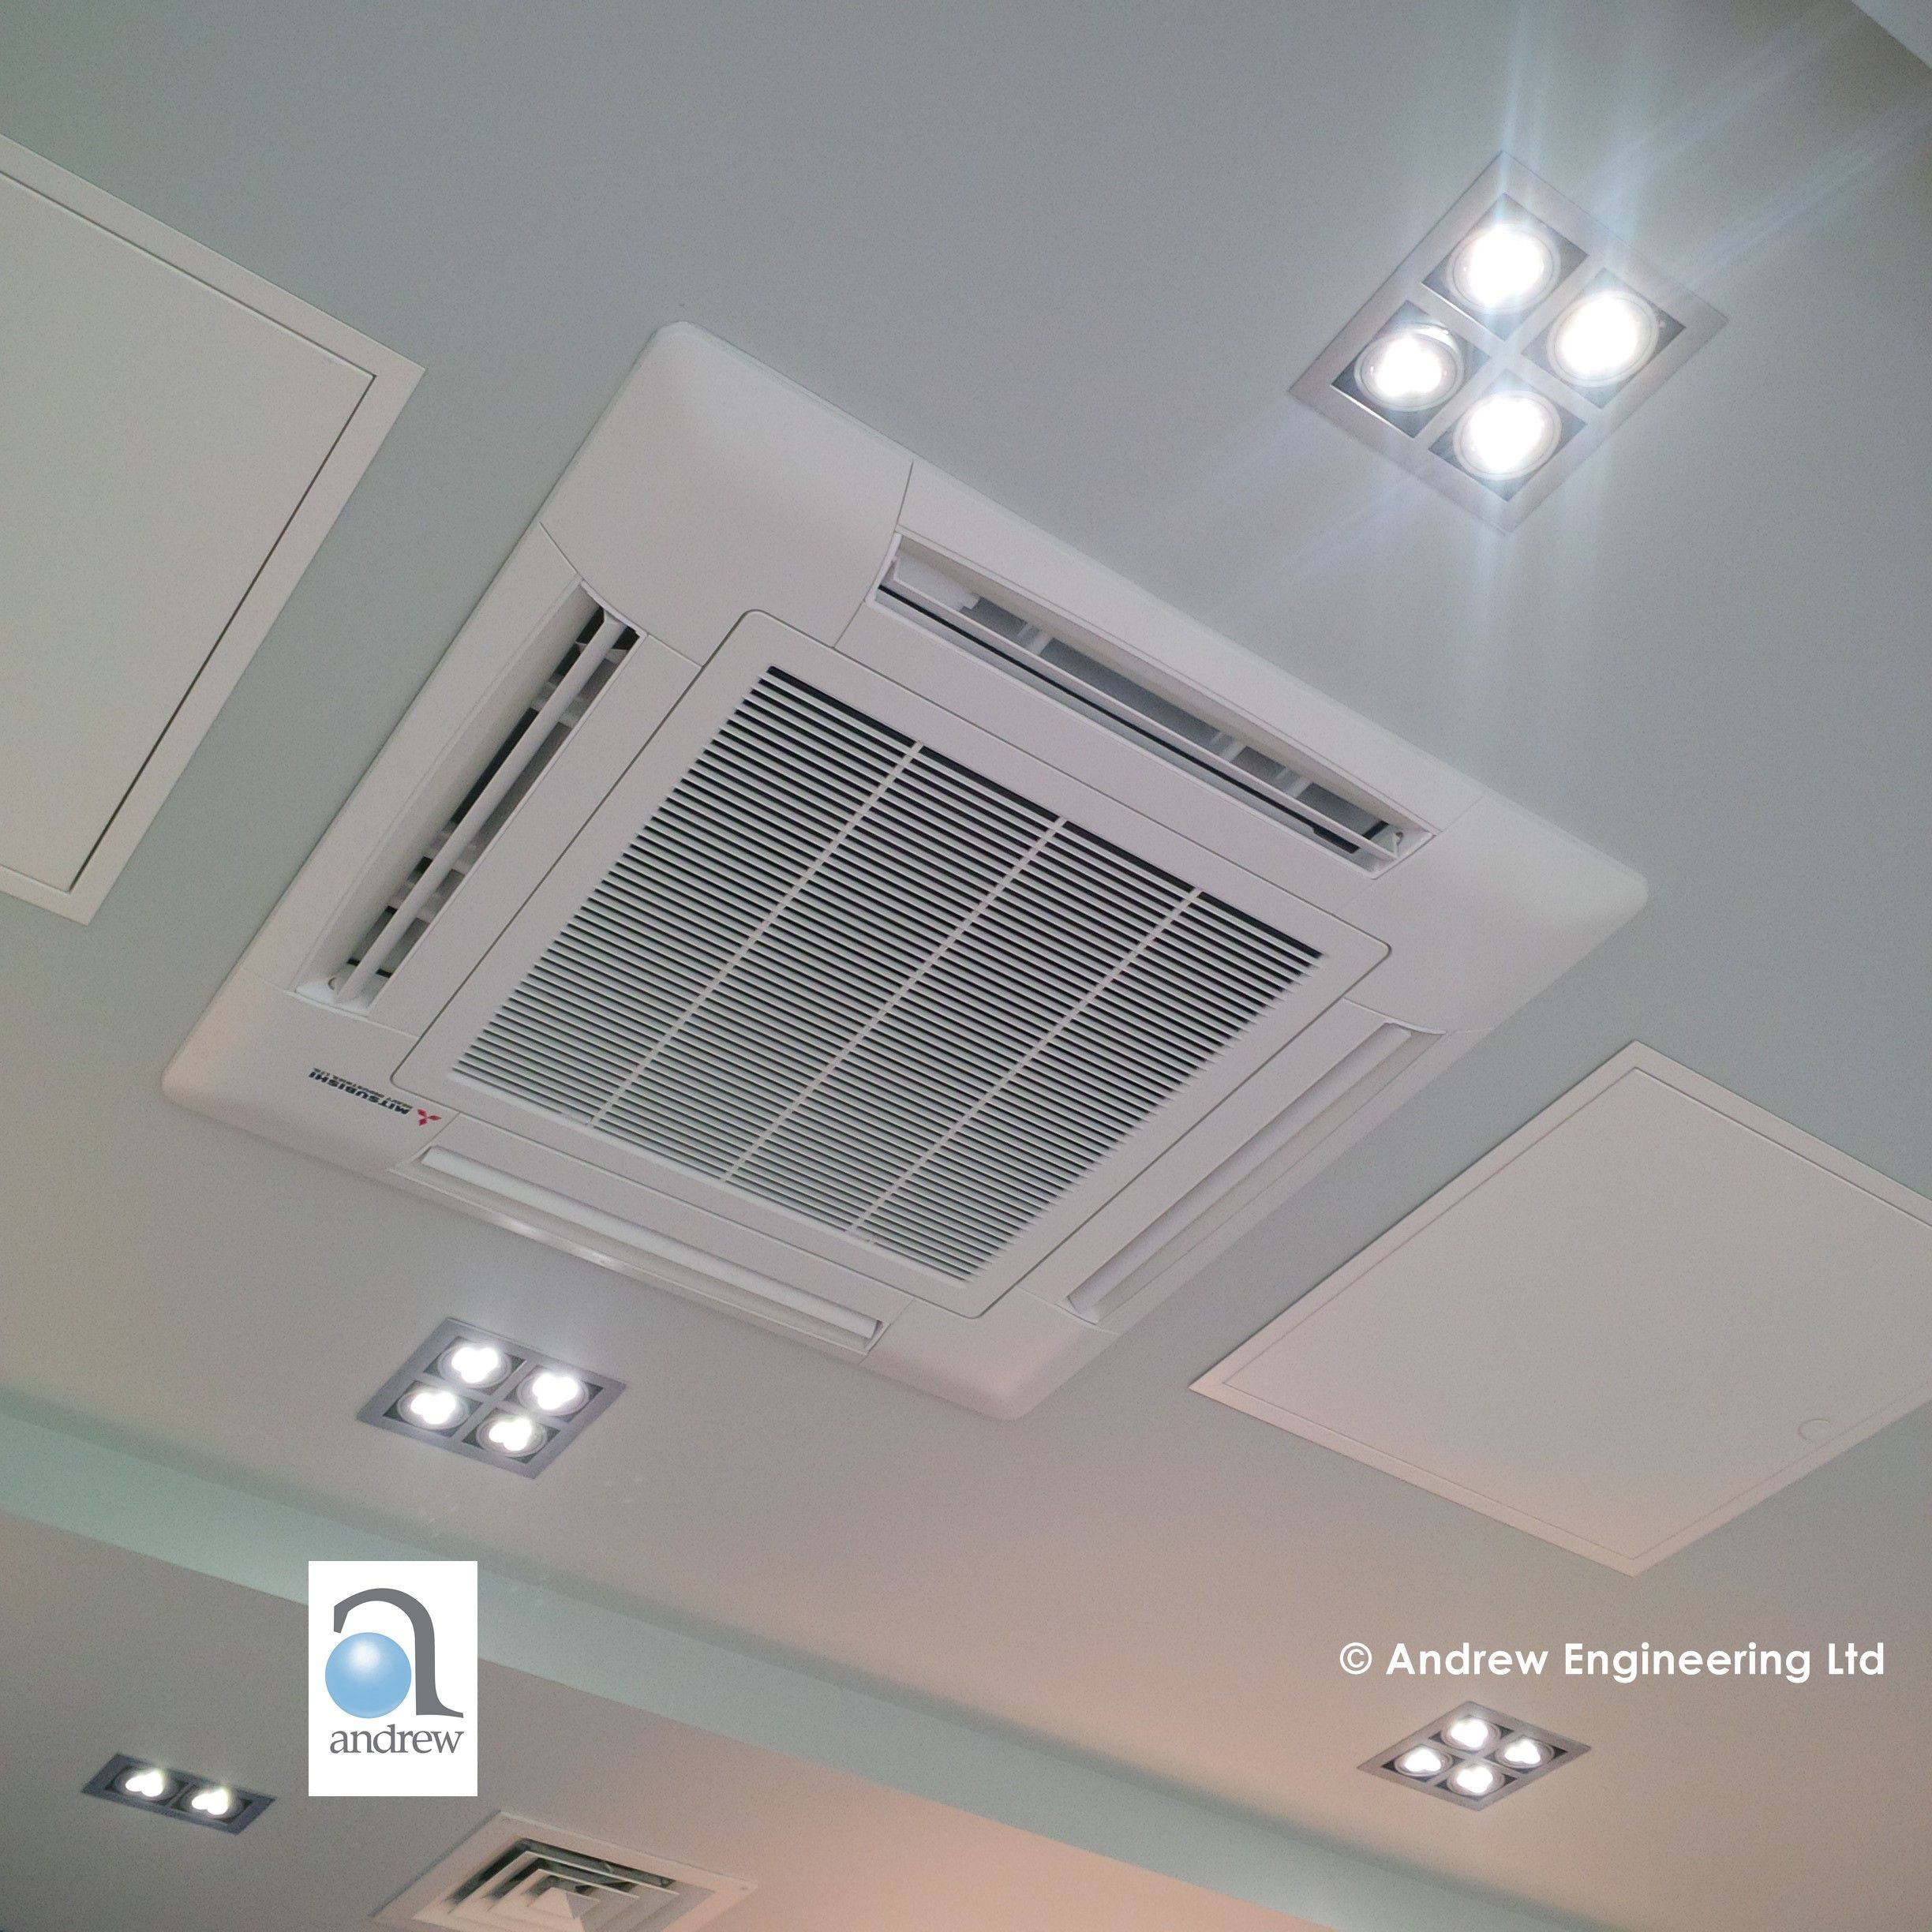 Meadowhall Shop Air Conditioning Air Conditioning Services Air